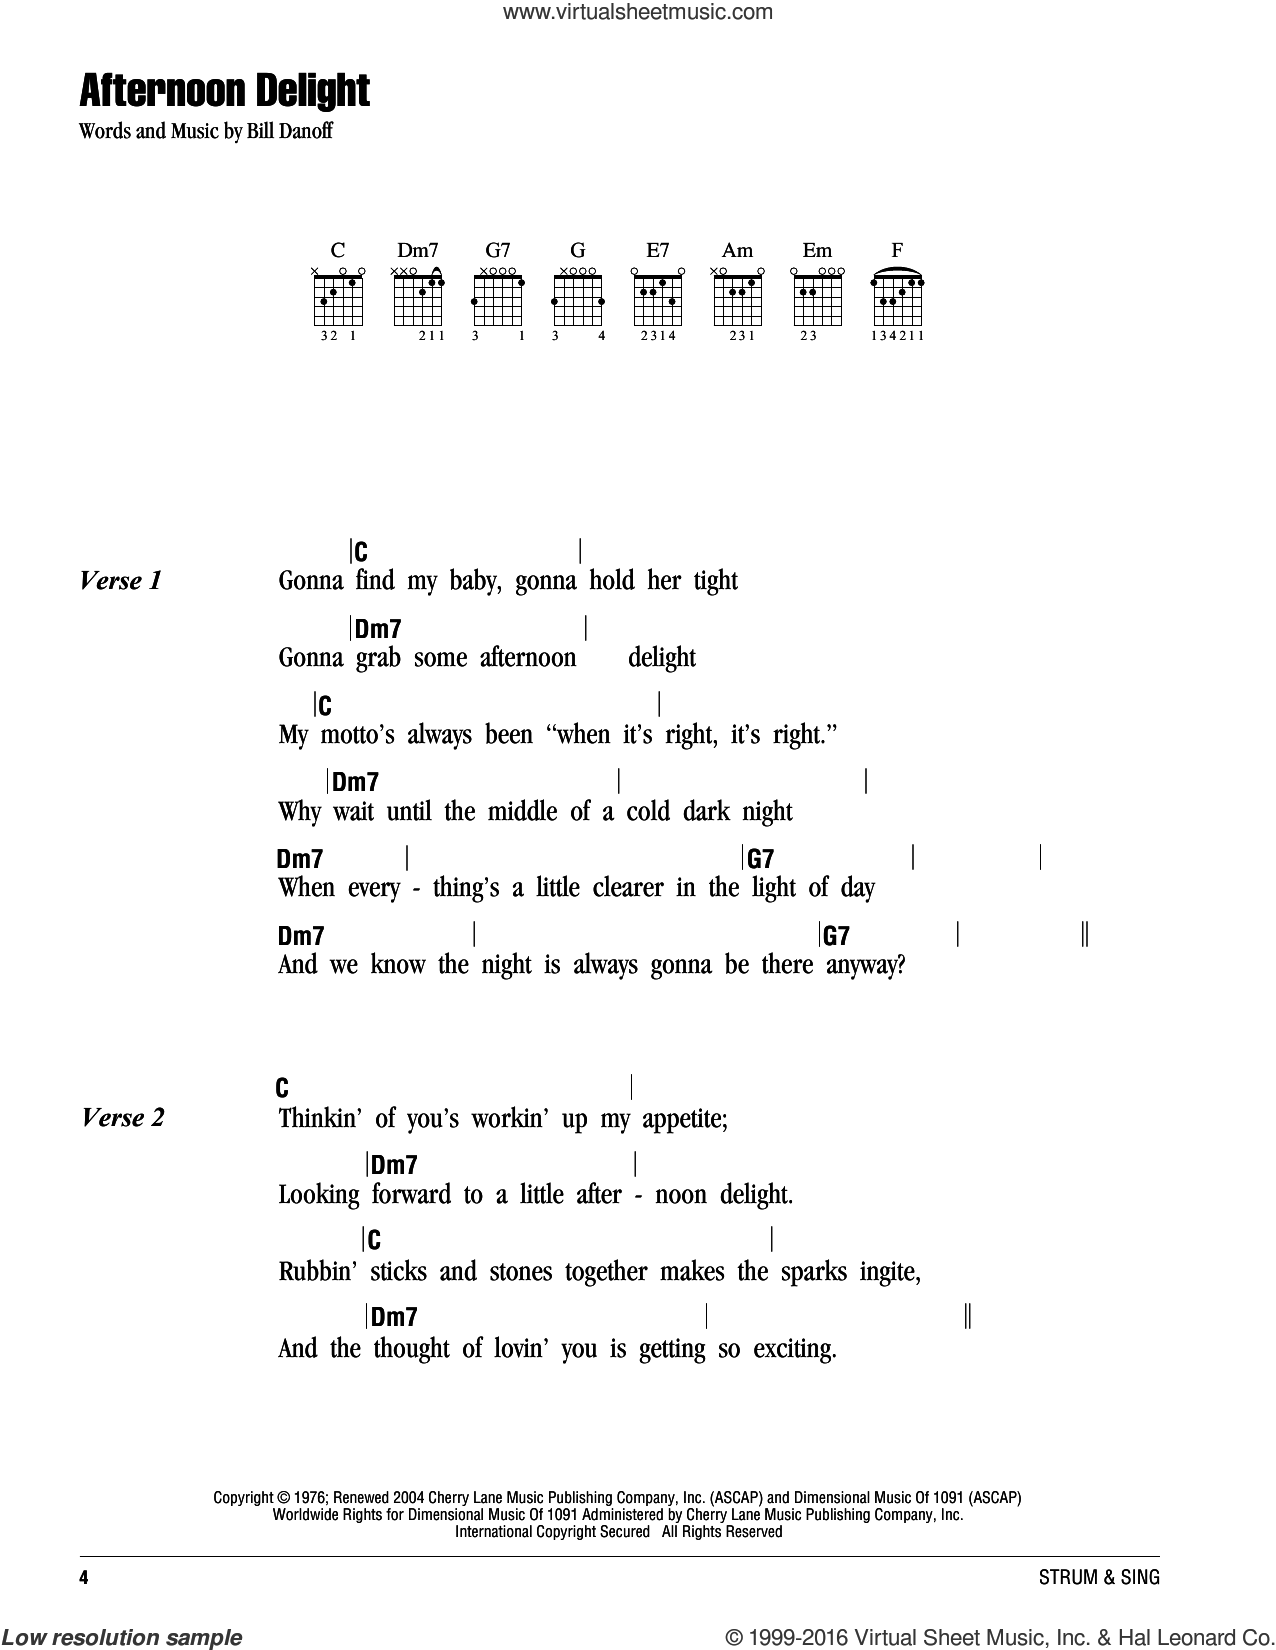 Afternoon Delight sheet music for guitar (chords) by Starland Vocal Band and Bill Danoff, intermediate skill level